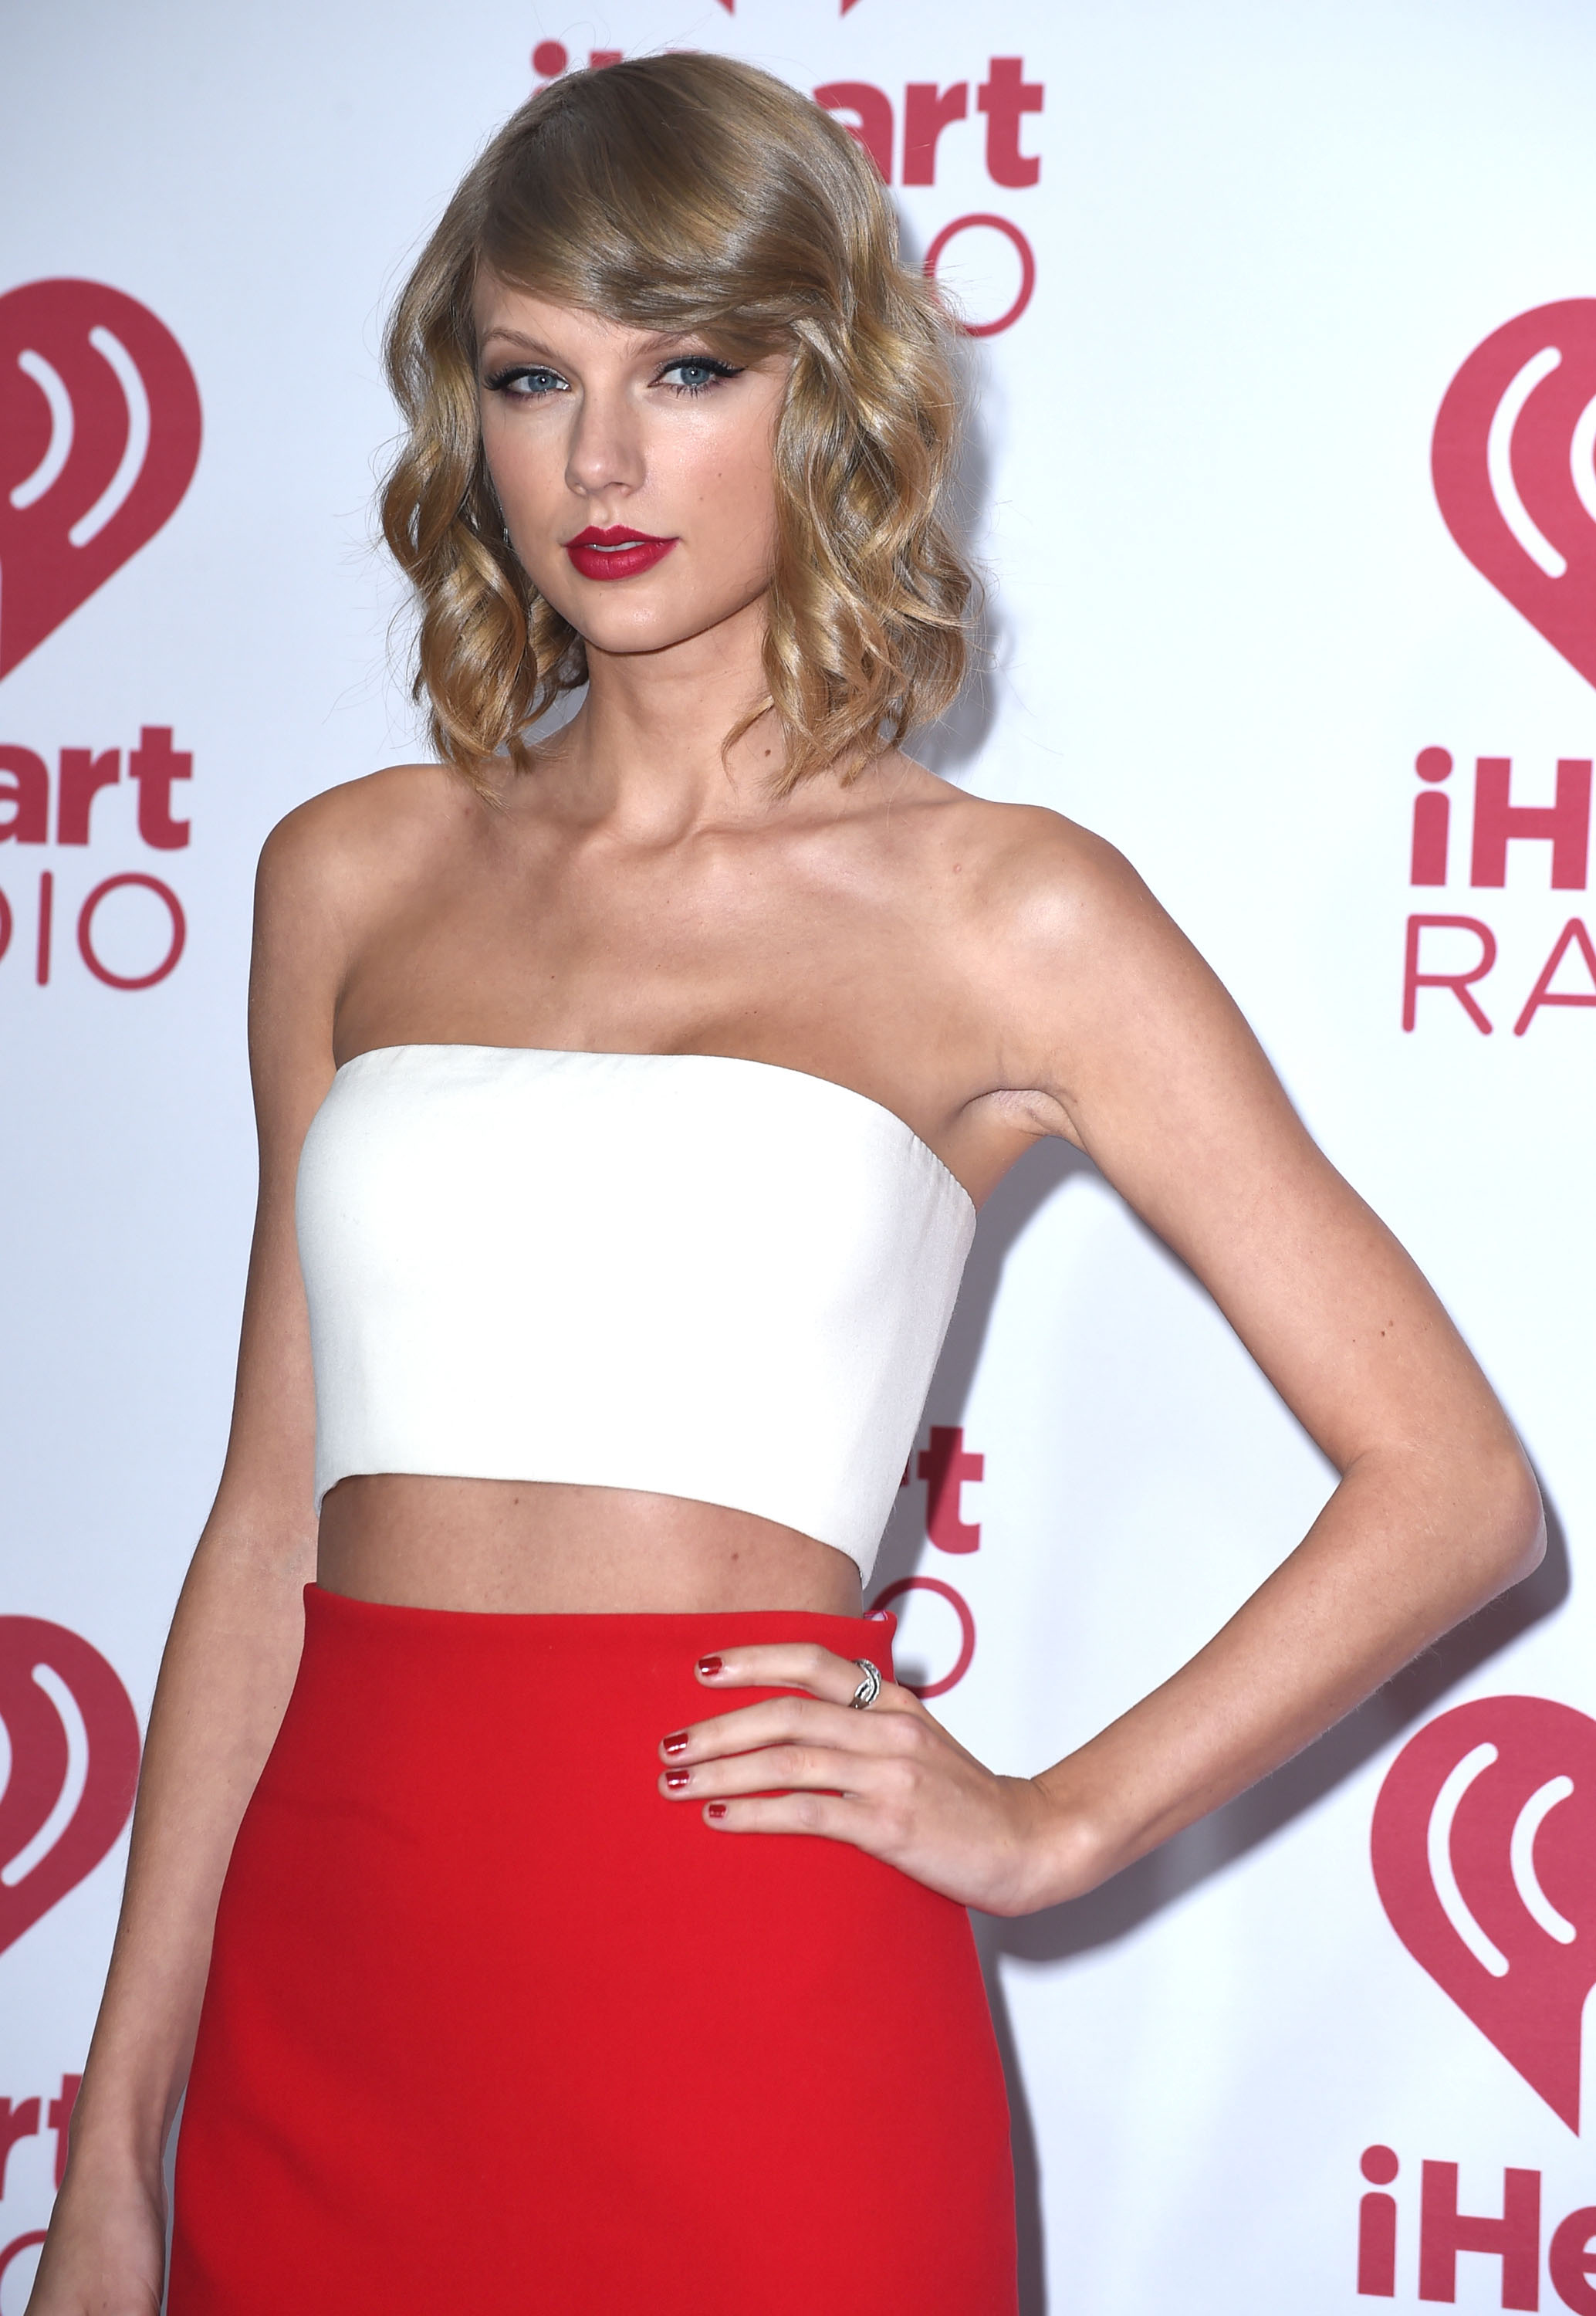 Taylor Swift poses at the 2014 iHeartRadio Music Festival - Night 1 - Press Room at MGM Grand Garden Arena on September 19, 2014 in Las Vegas, Nevada.